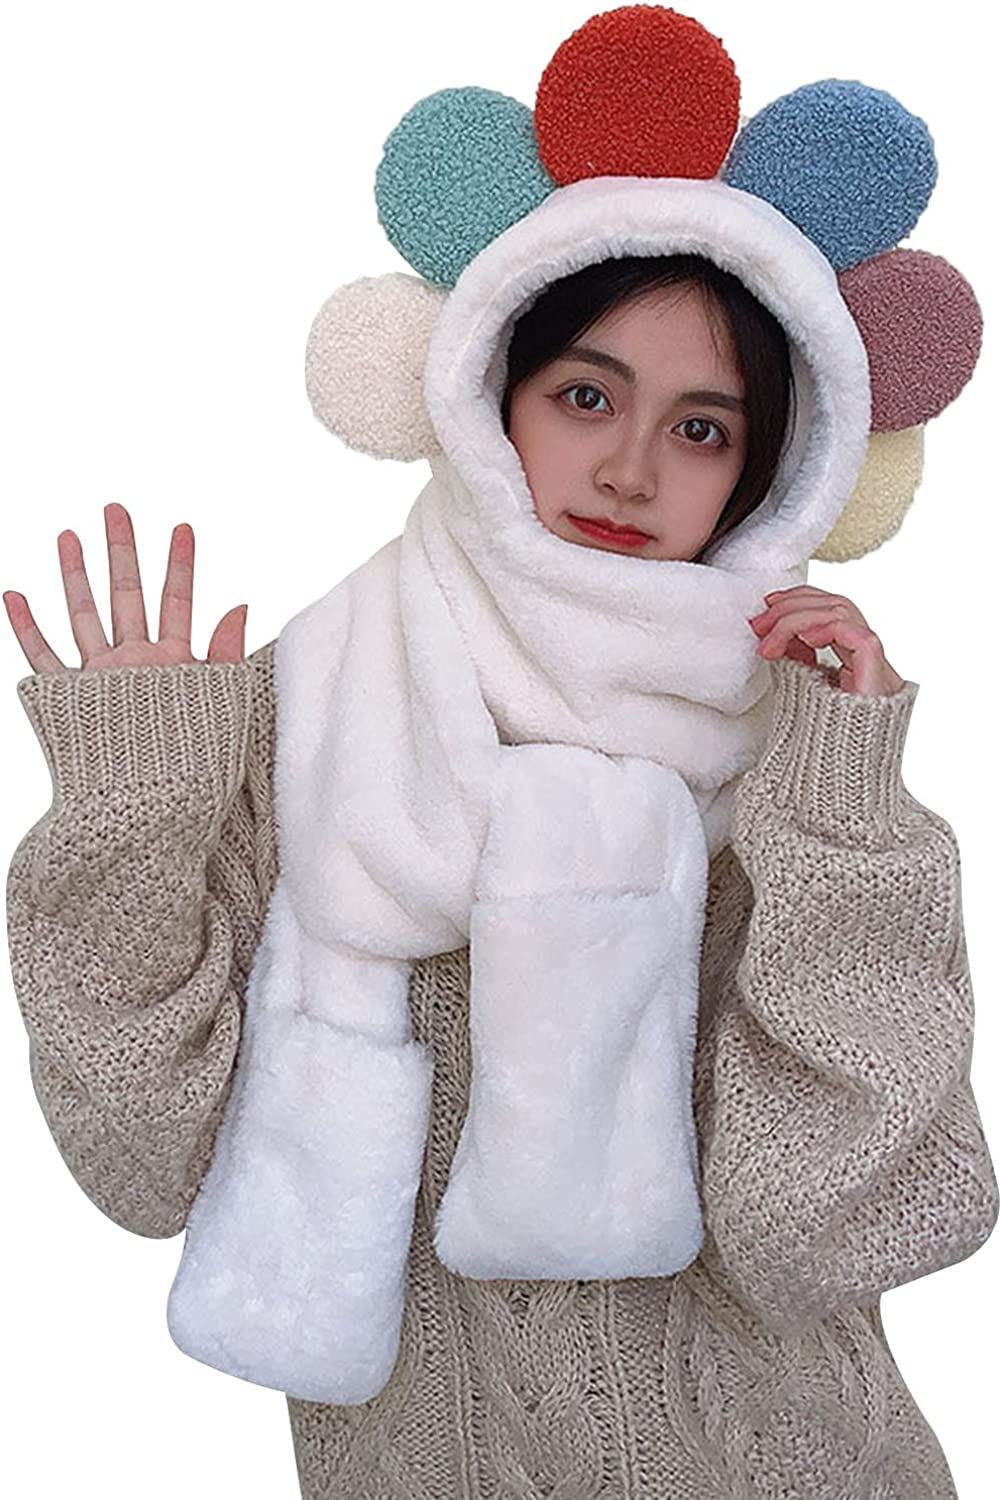 Women Girls Cute Women Flower Plush Scarf 3in1 Warm Plush Hooded Scarf with Mittens Colorful Plush Balls Cap for Winter